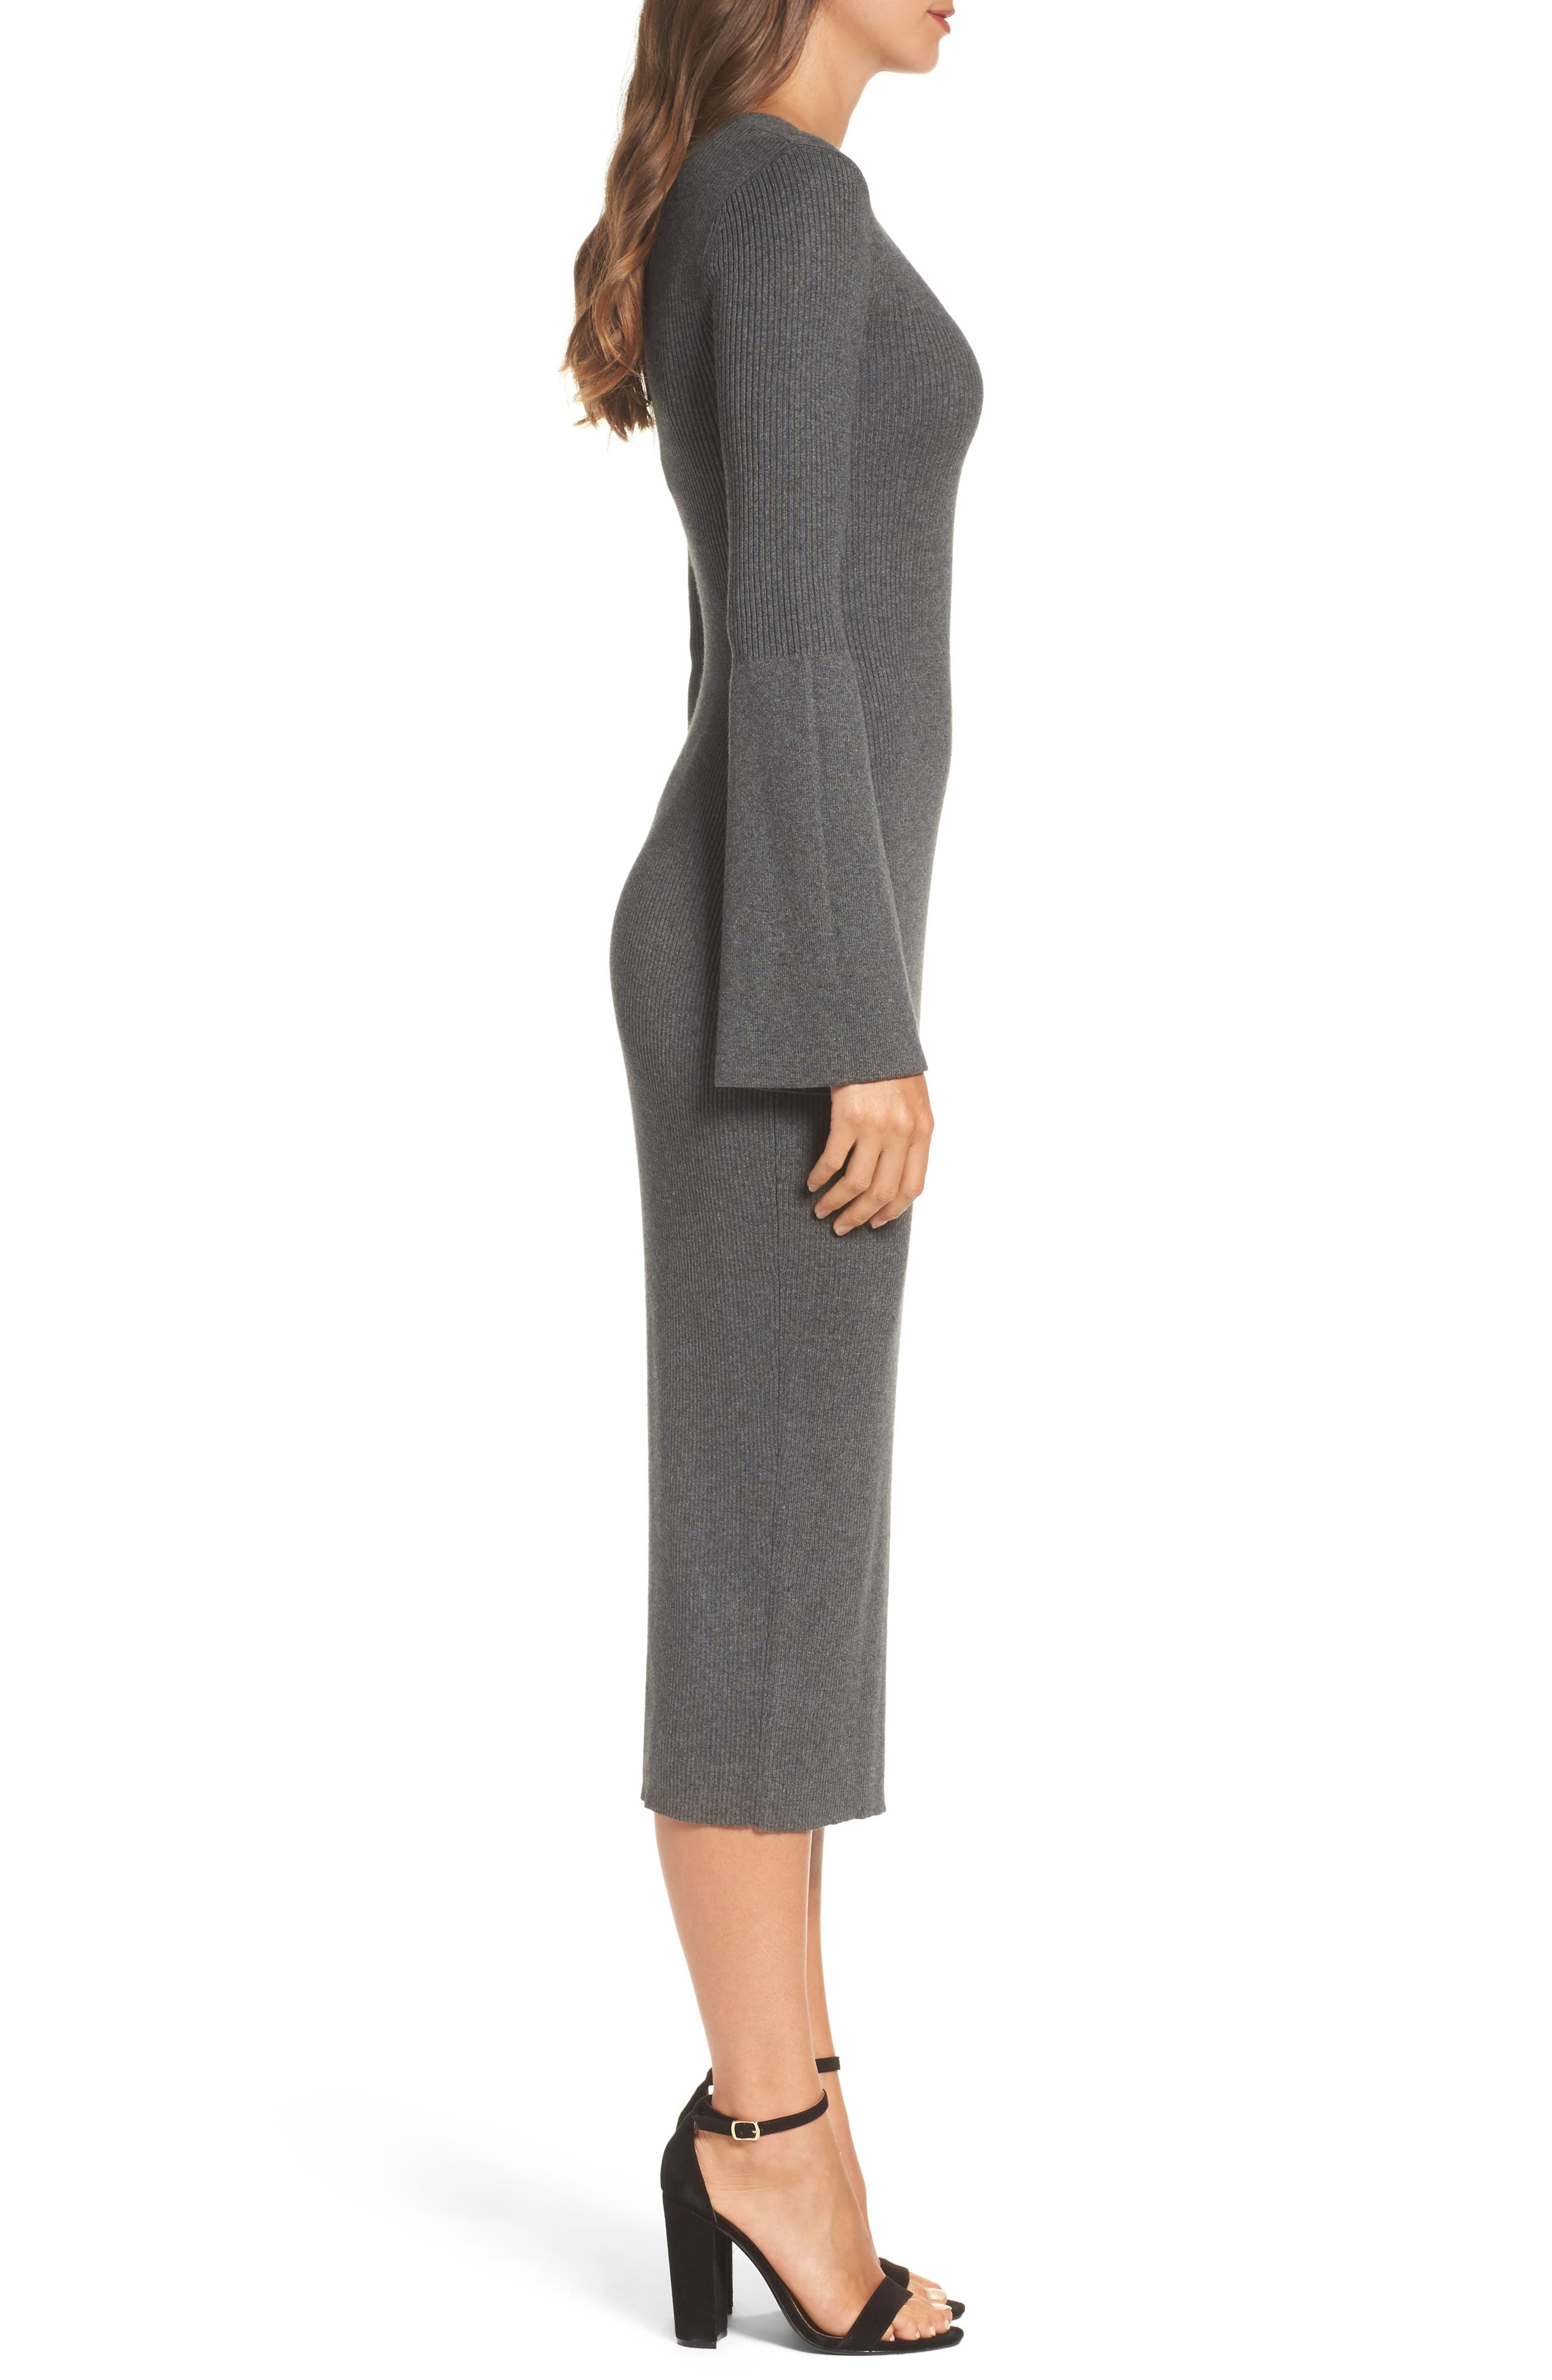 Virgie Knits Midi Dress,                             Alternate thumbnail 3, color,                             Charcoal